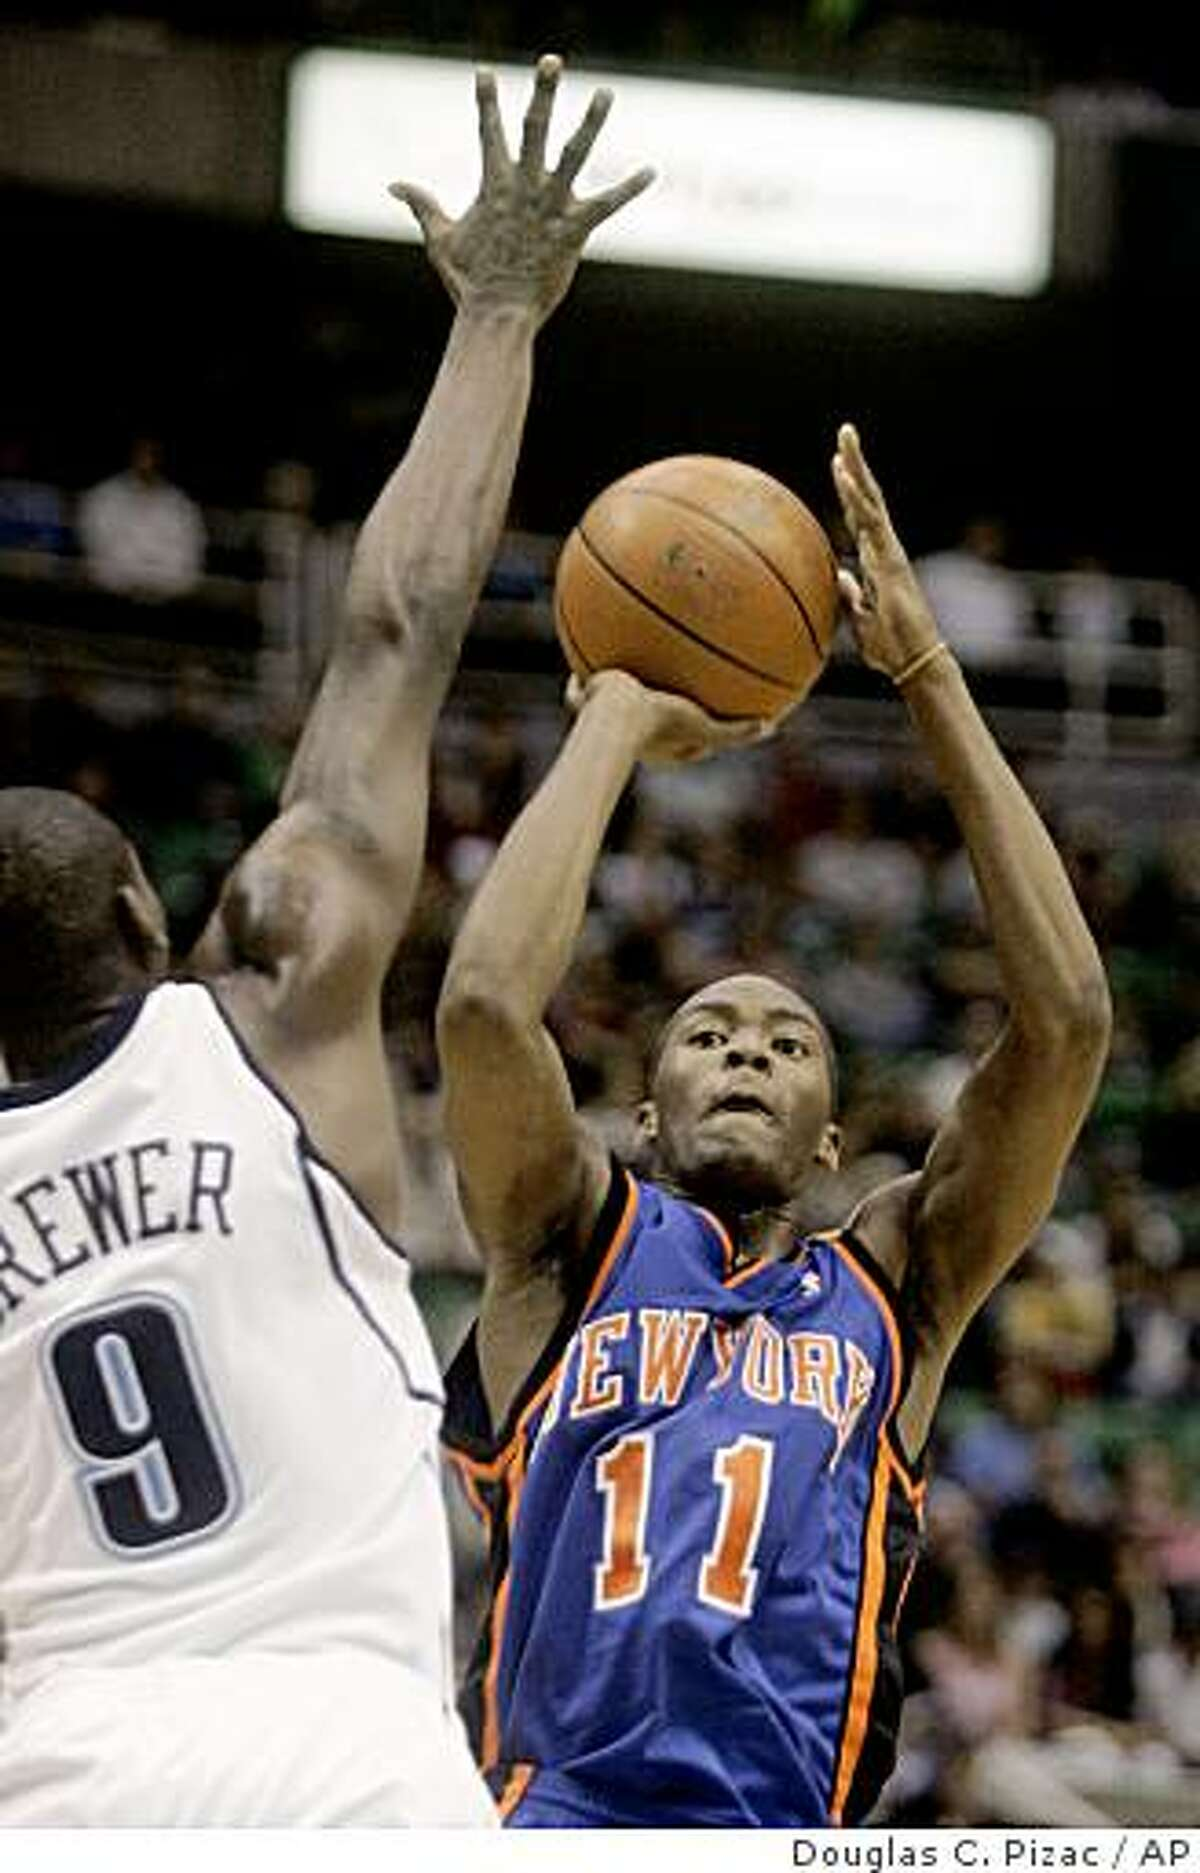 New York Knicks guard Jamal Crawford (11) shoots against Utah Jazz guard Ronnie Brewer (9) during the first quarter of the NBA basketball game Wednesday, Jan. 30, 2008, in Salt Lake City. Crawford finished the night with 26 points for the game-high and 9 assists. (AP Photo/Douglas C. Pizac)